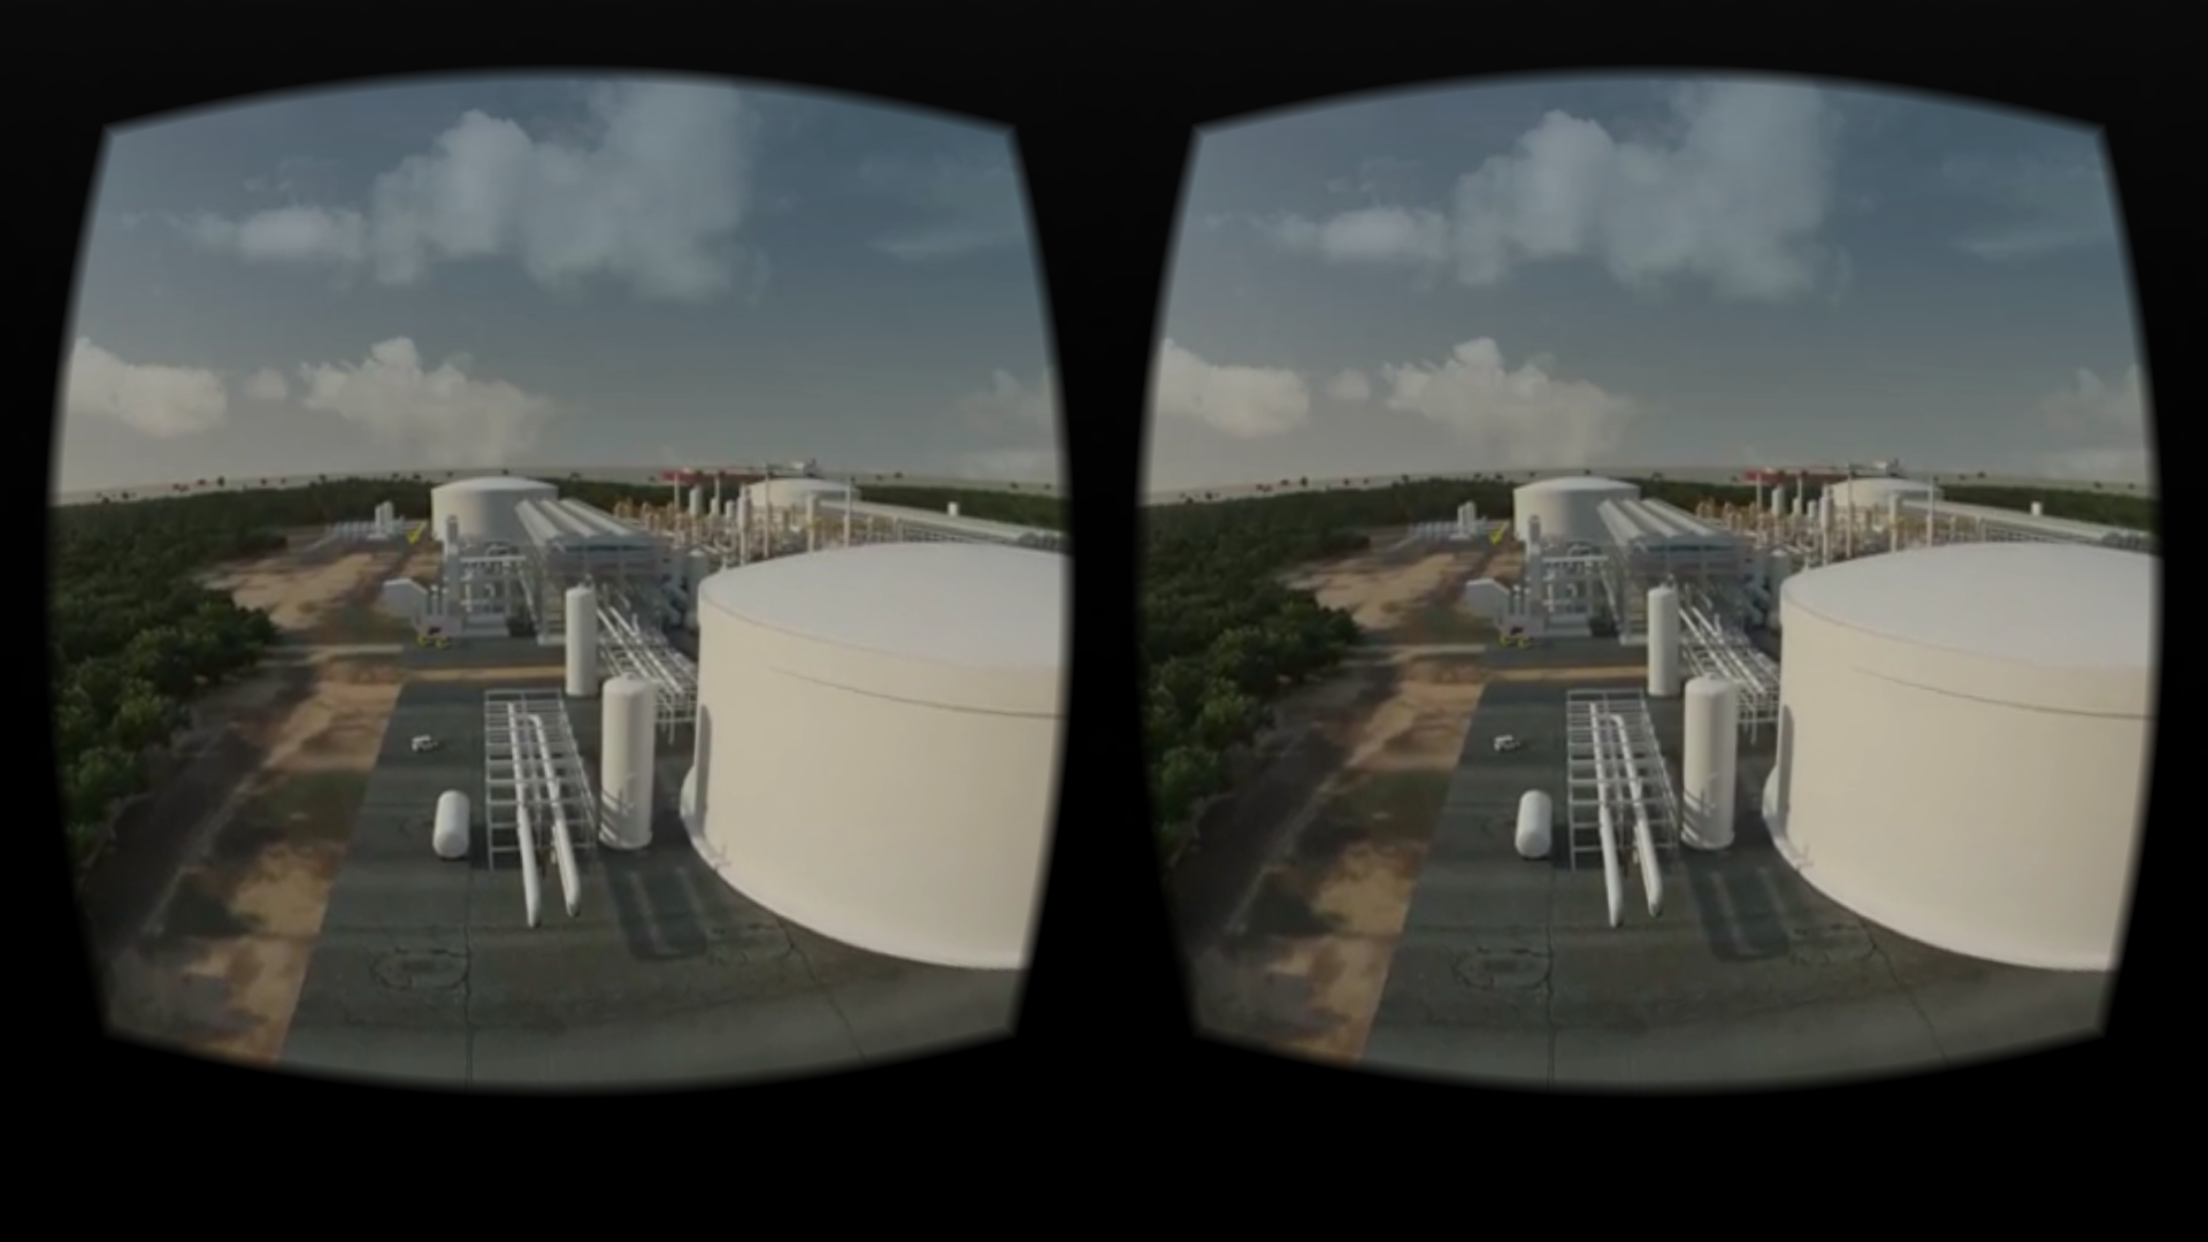 Touring a facility in a computer-generated jungle in ExxonMobil's VR app